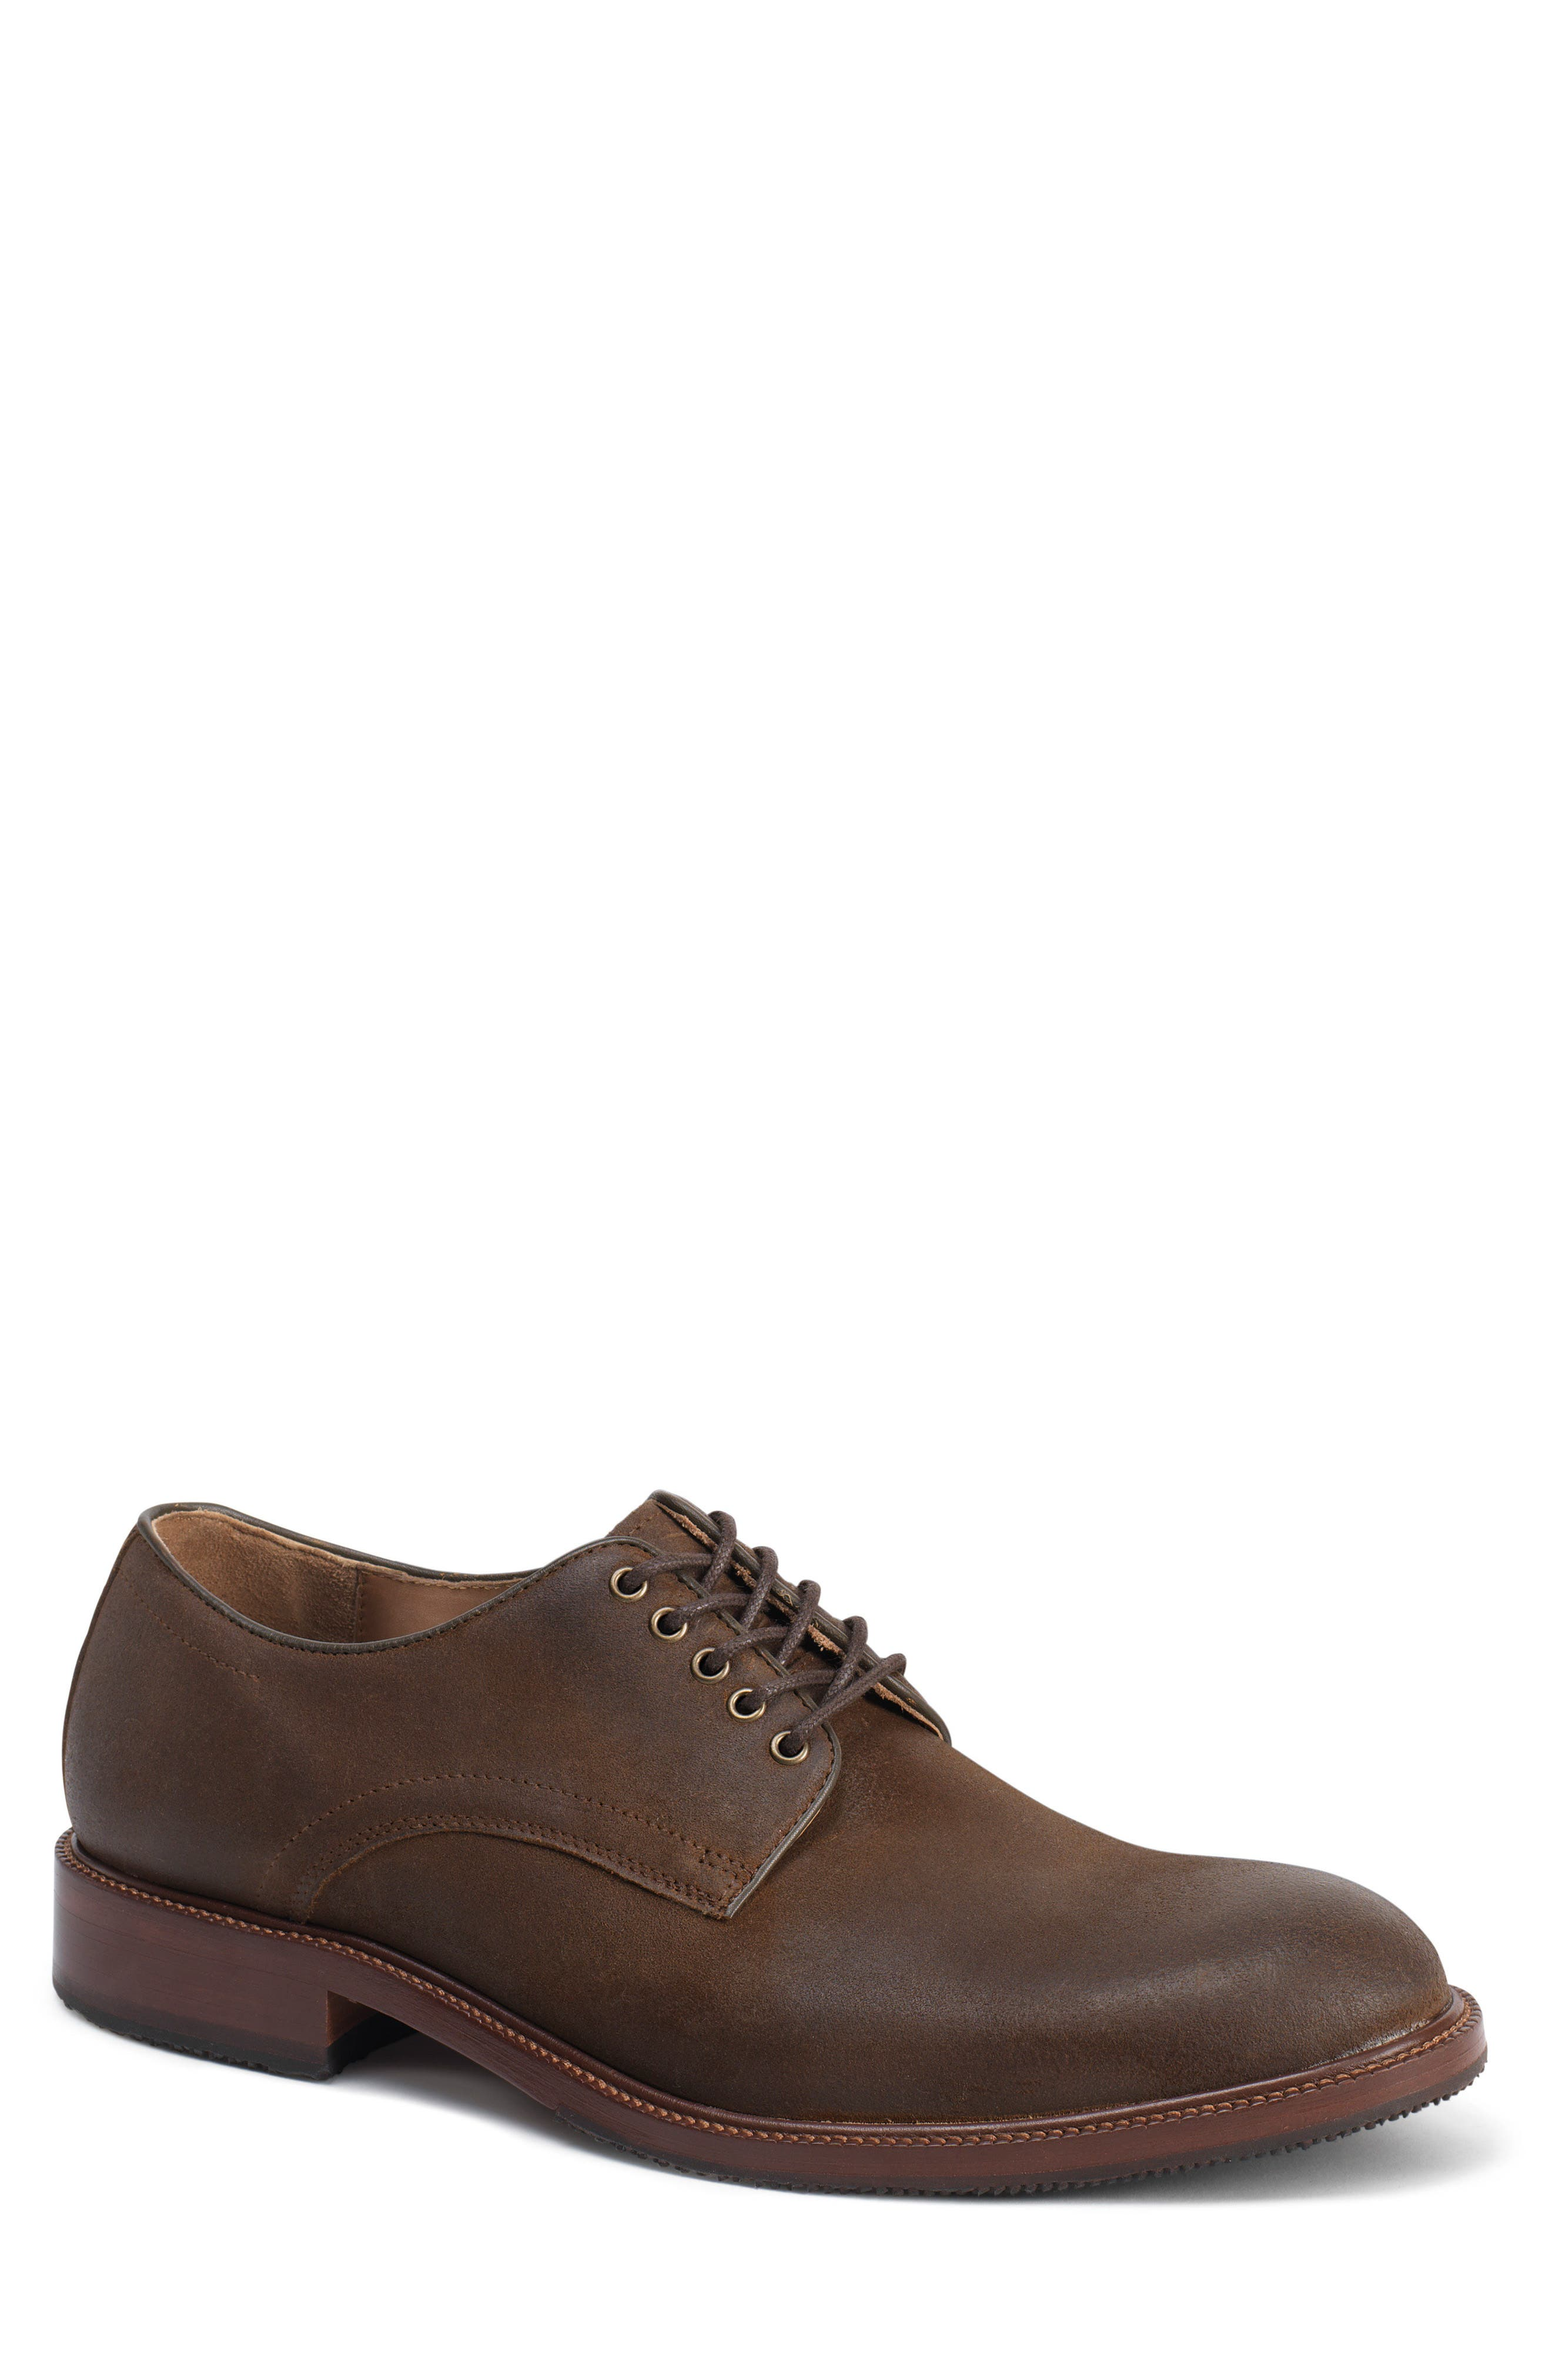 TRASK Landry Plain Toe Derby, Main, color, BROWN WAXED SUEDE